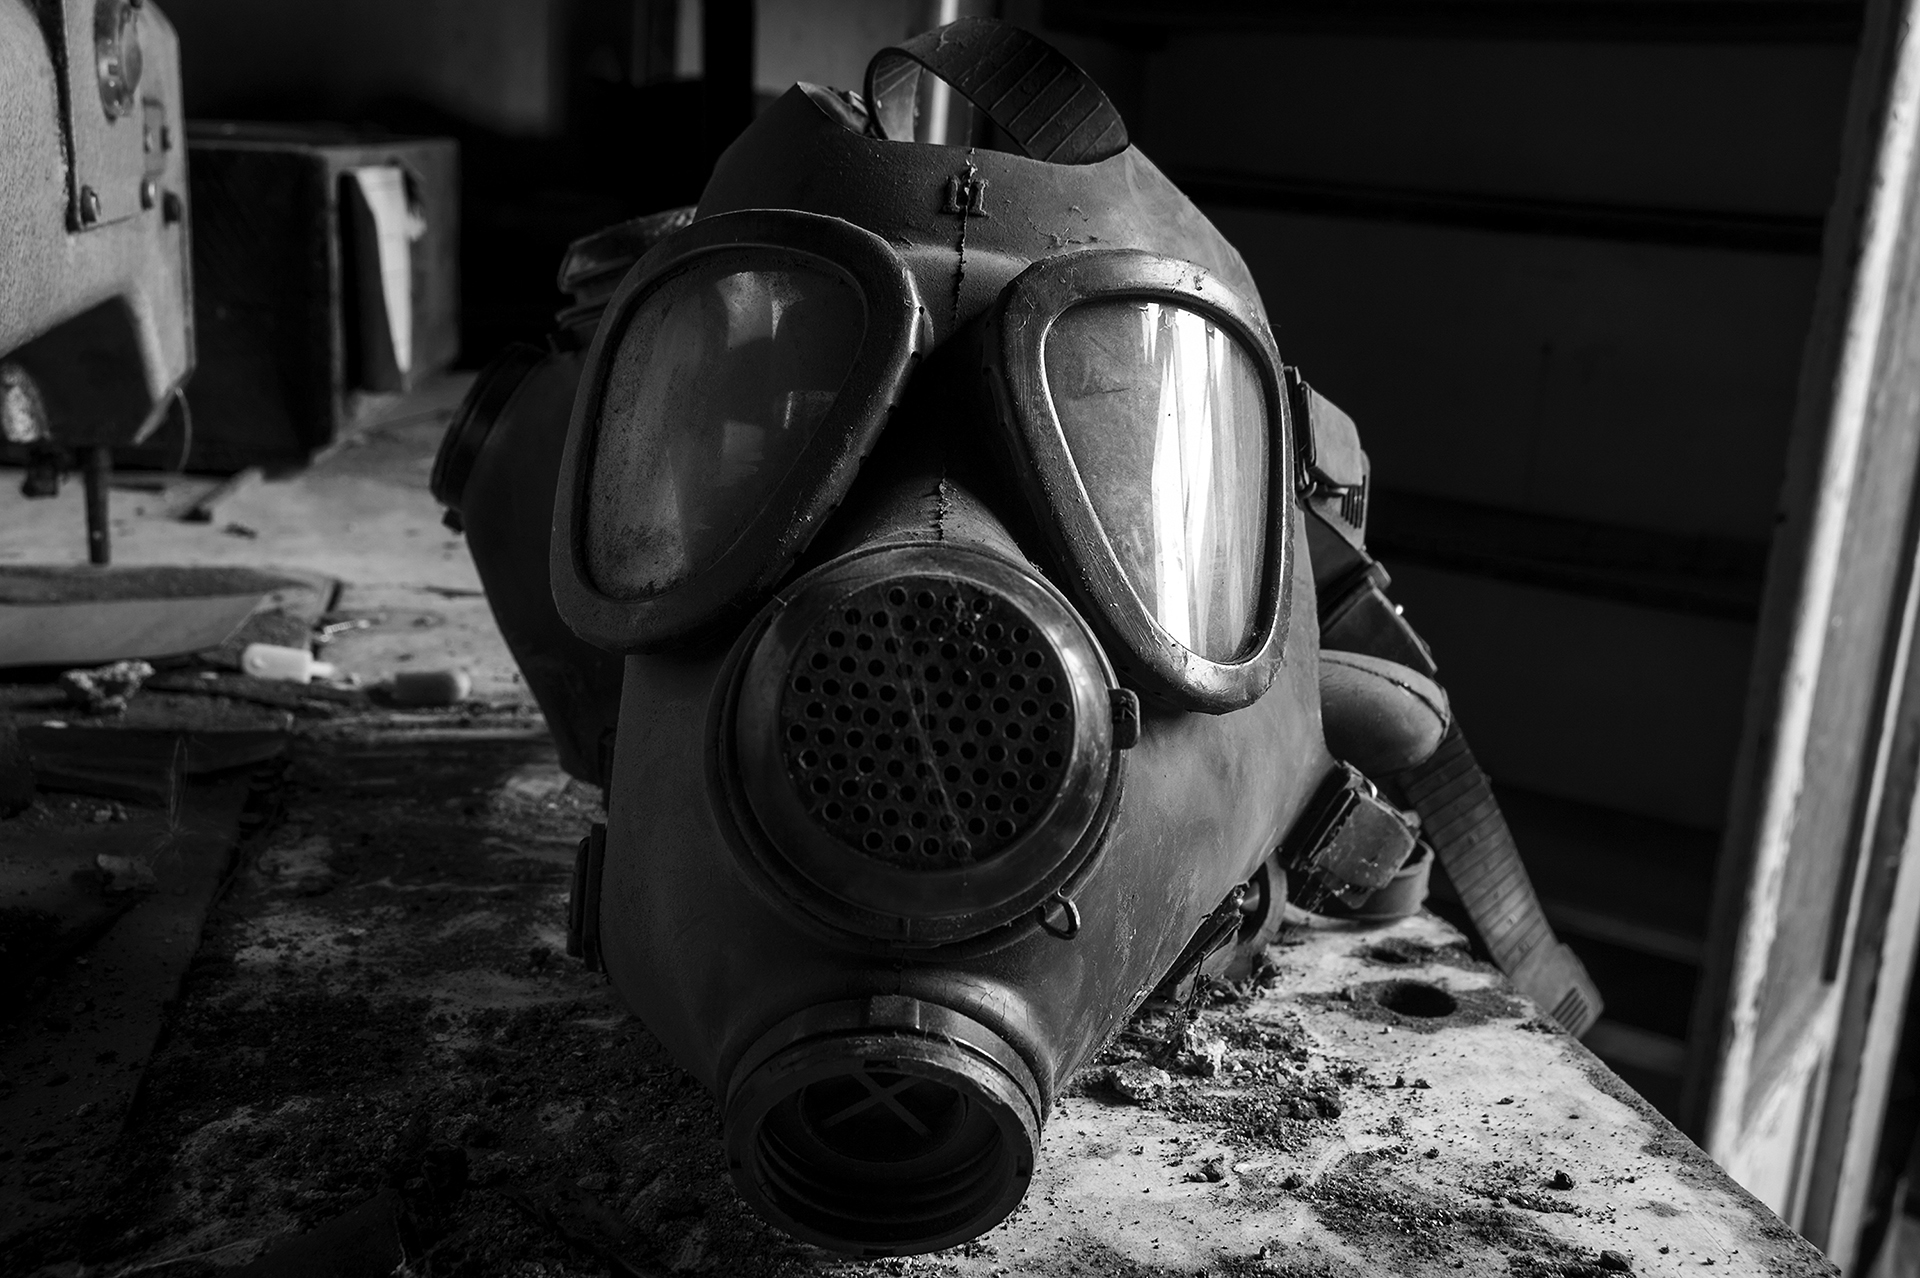 A gas mask sets atop a workbench at an abandoned synagogue-turned furniture shop in Oradea, Romania on August 21, 2013. Though the mask was used only for harsh chemicals during the furniture making process, it is a grim reminder of the uncertain fate of many of the site's former religious members deported during the Second World War. (Photo by Daniel Owen/GroundTruth)